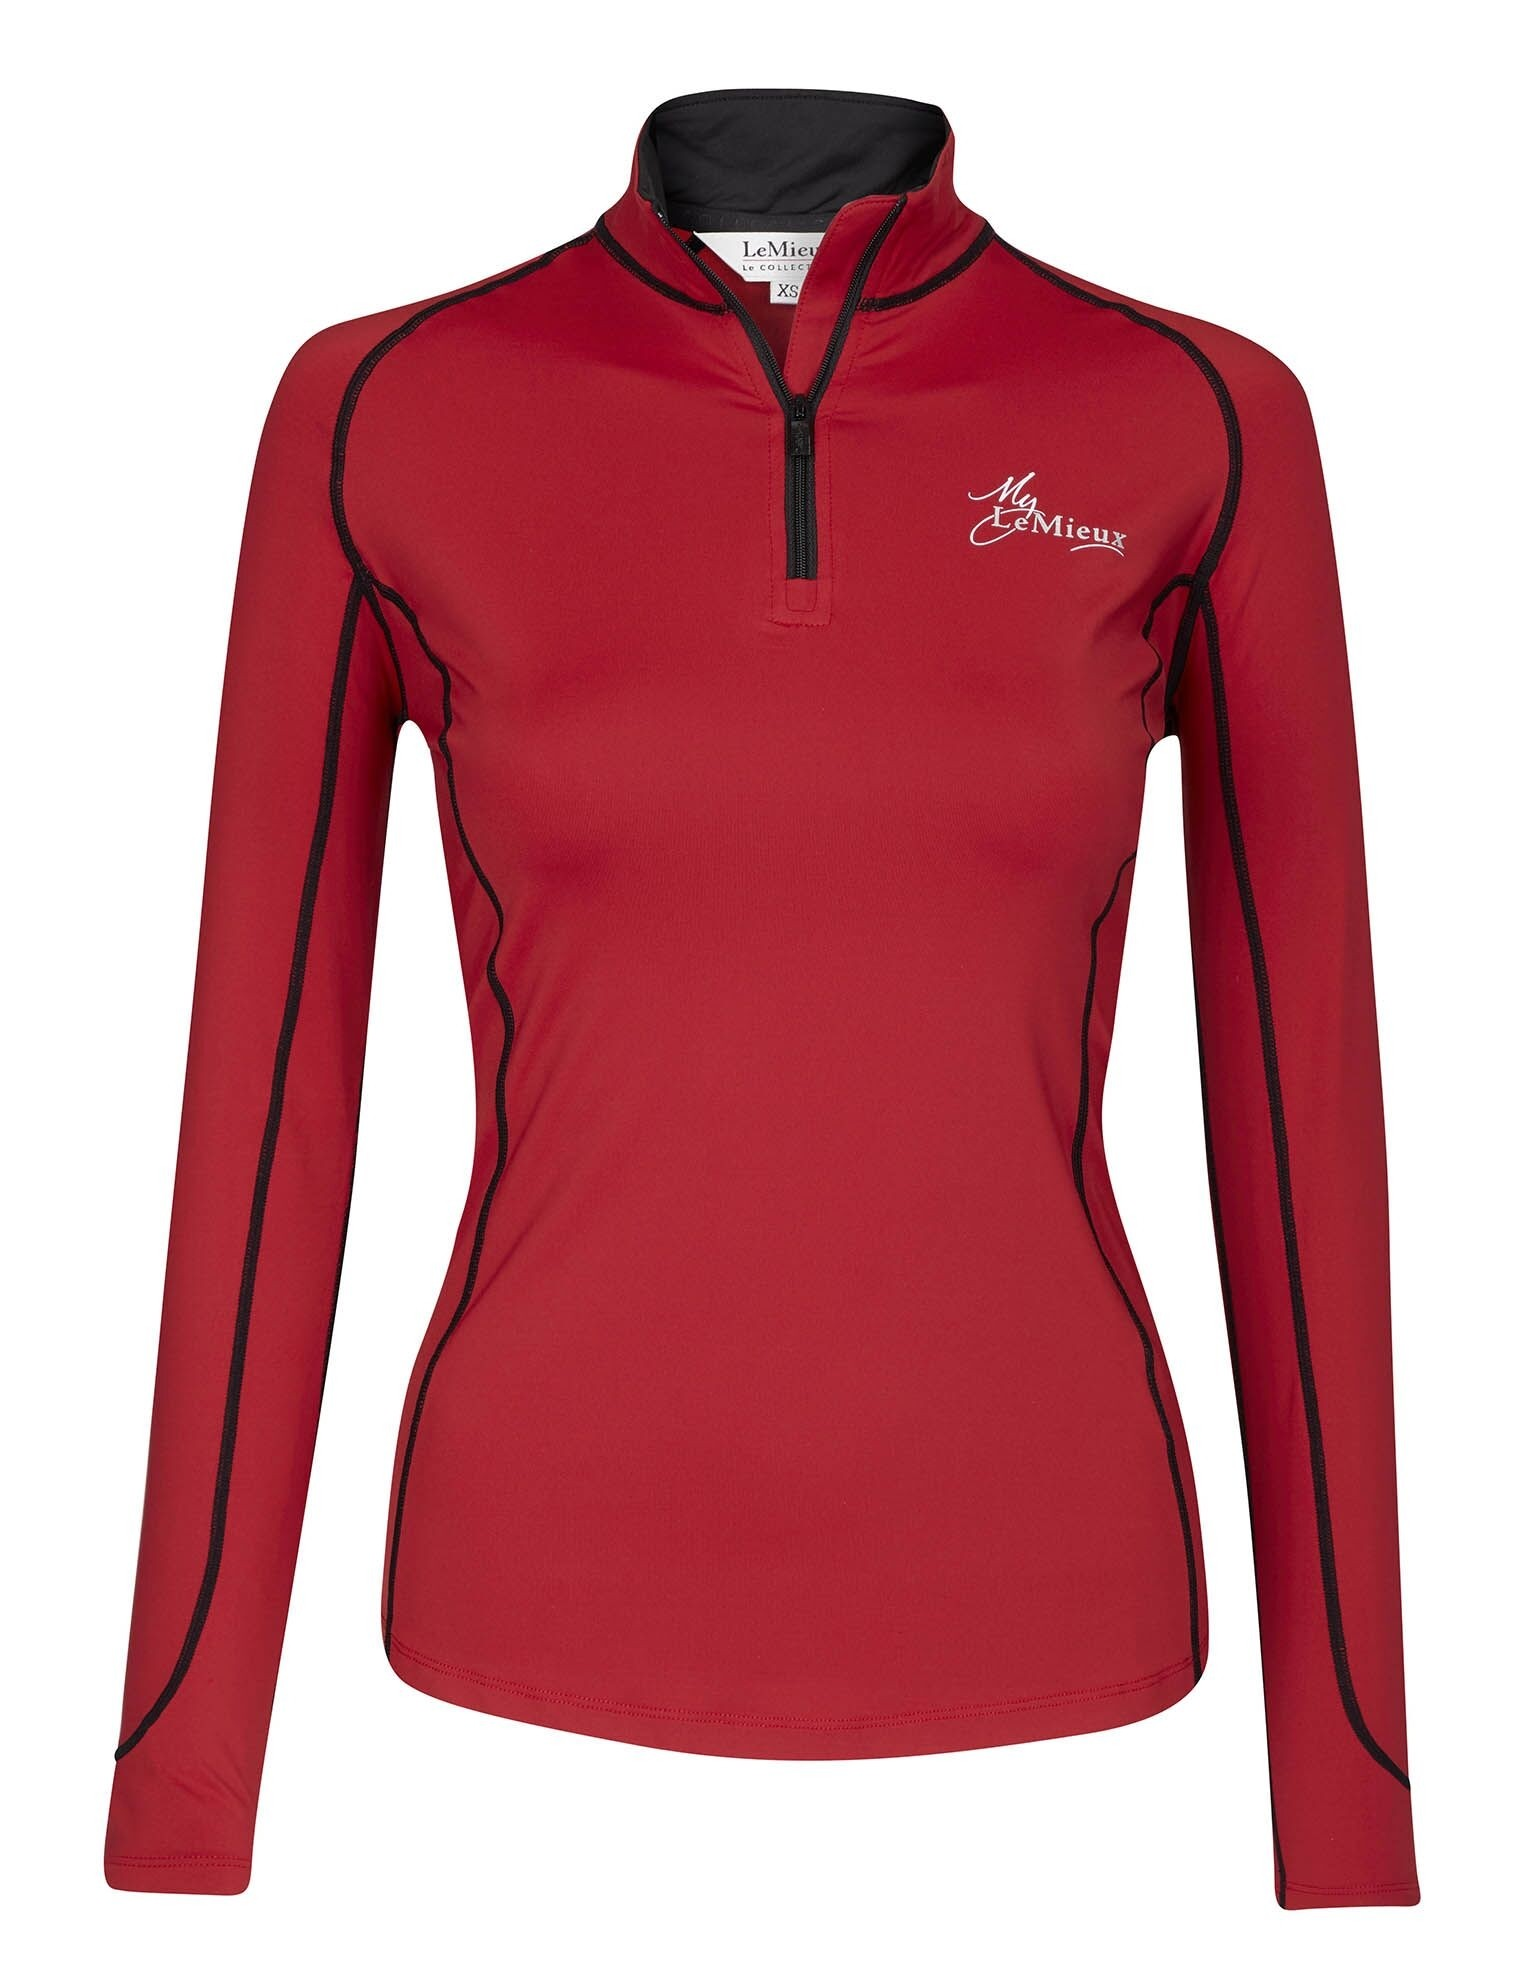 My LeMieux Base Layer  - Thomas Irving's equestrian and accessories store  My LeMieux Base Layer